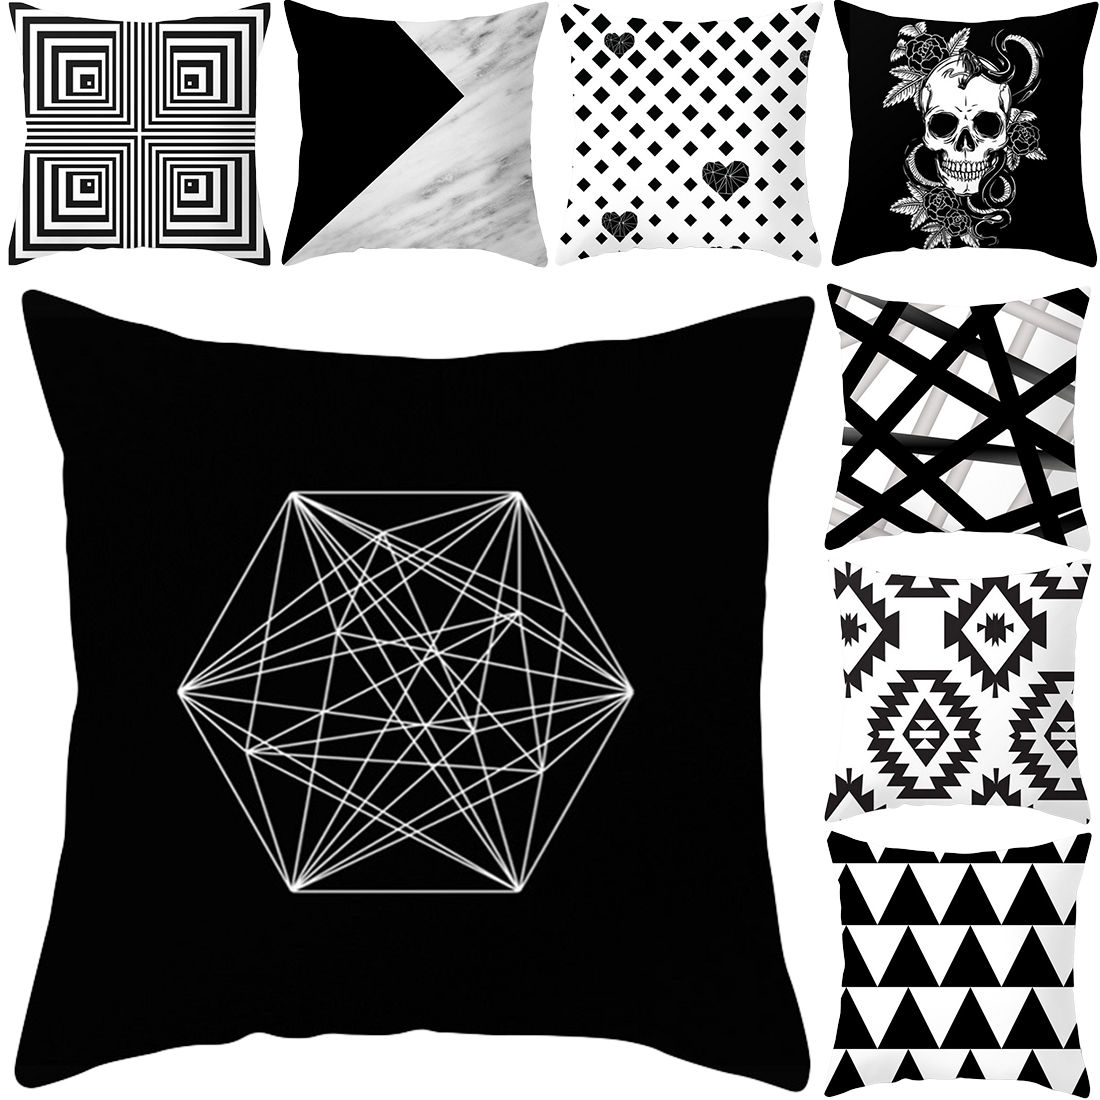 Nordic Black And White Geometrical Sofa Pillow Case - Sofa Cushions Black And White